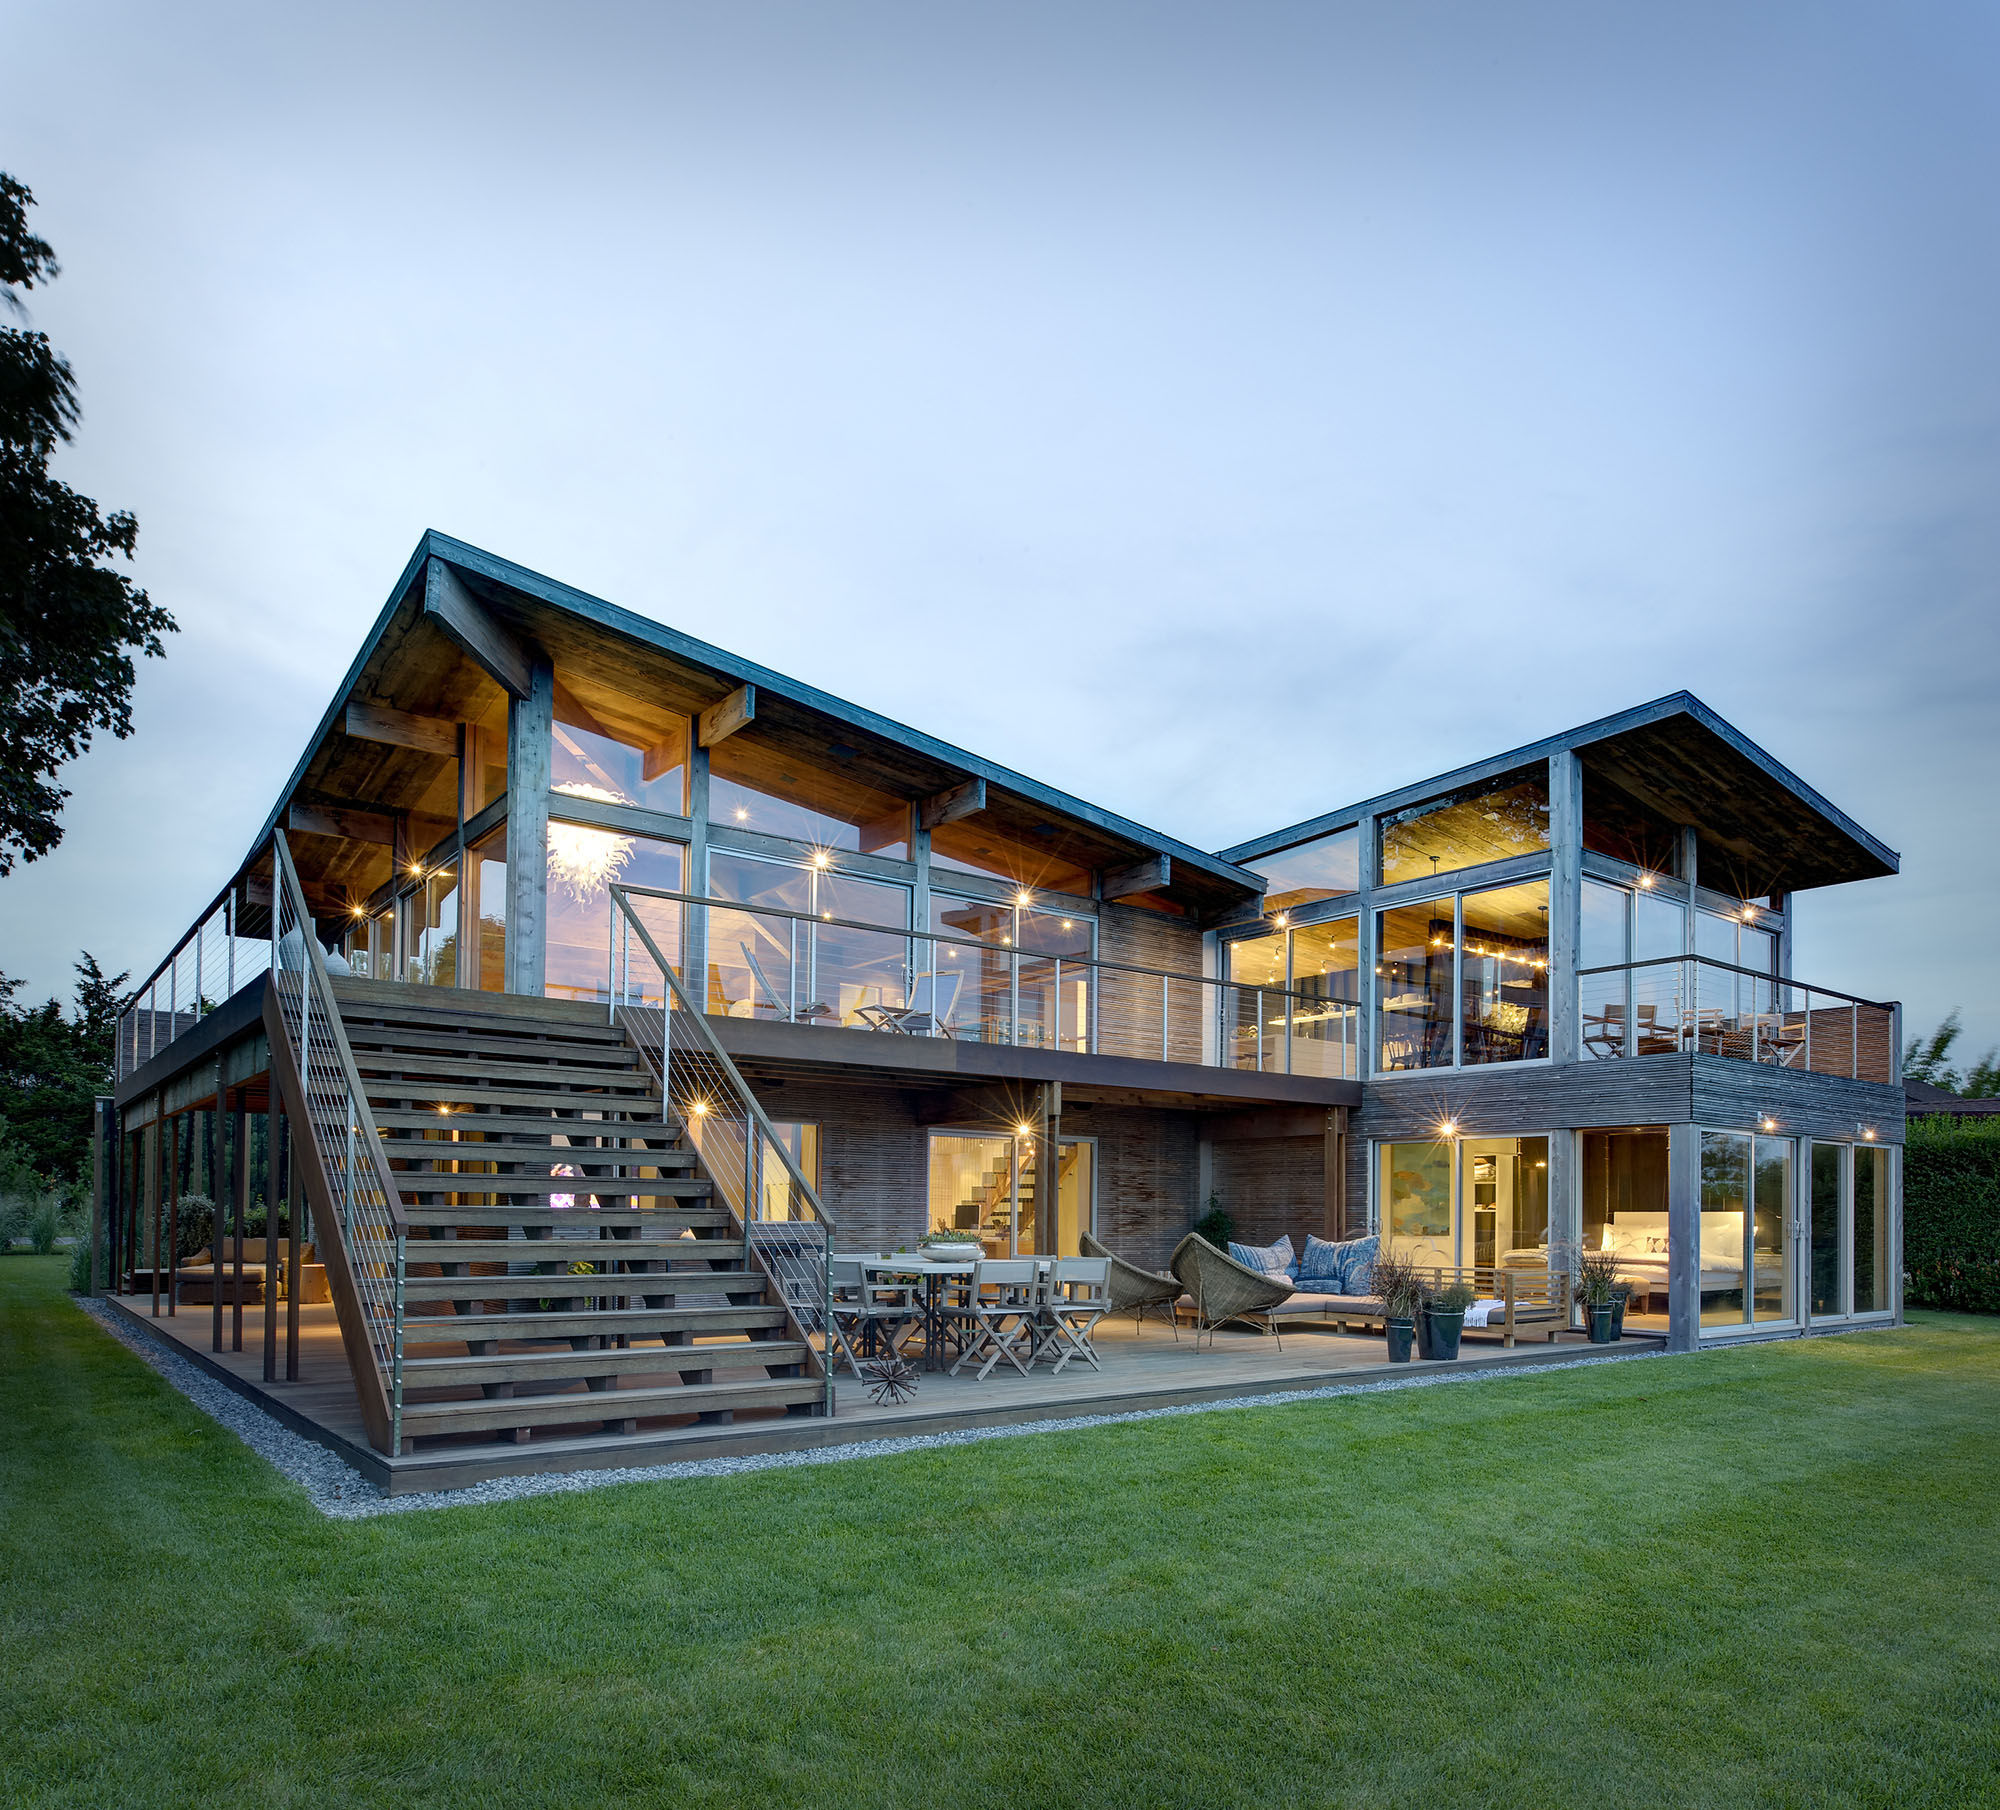 Home Design Ideas Architecture: Hurricane-Proof Wood And Steel Waterfront Home On Long